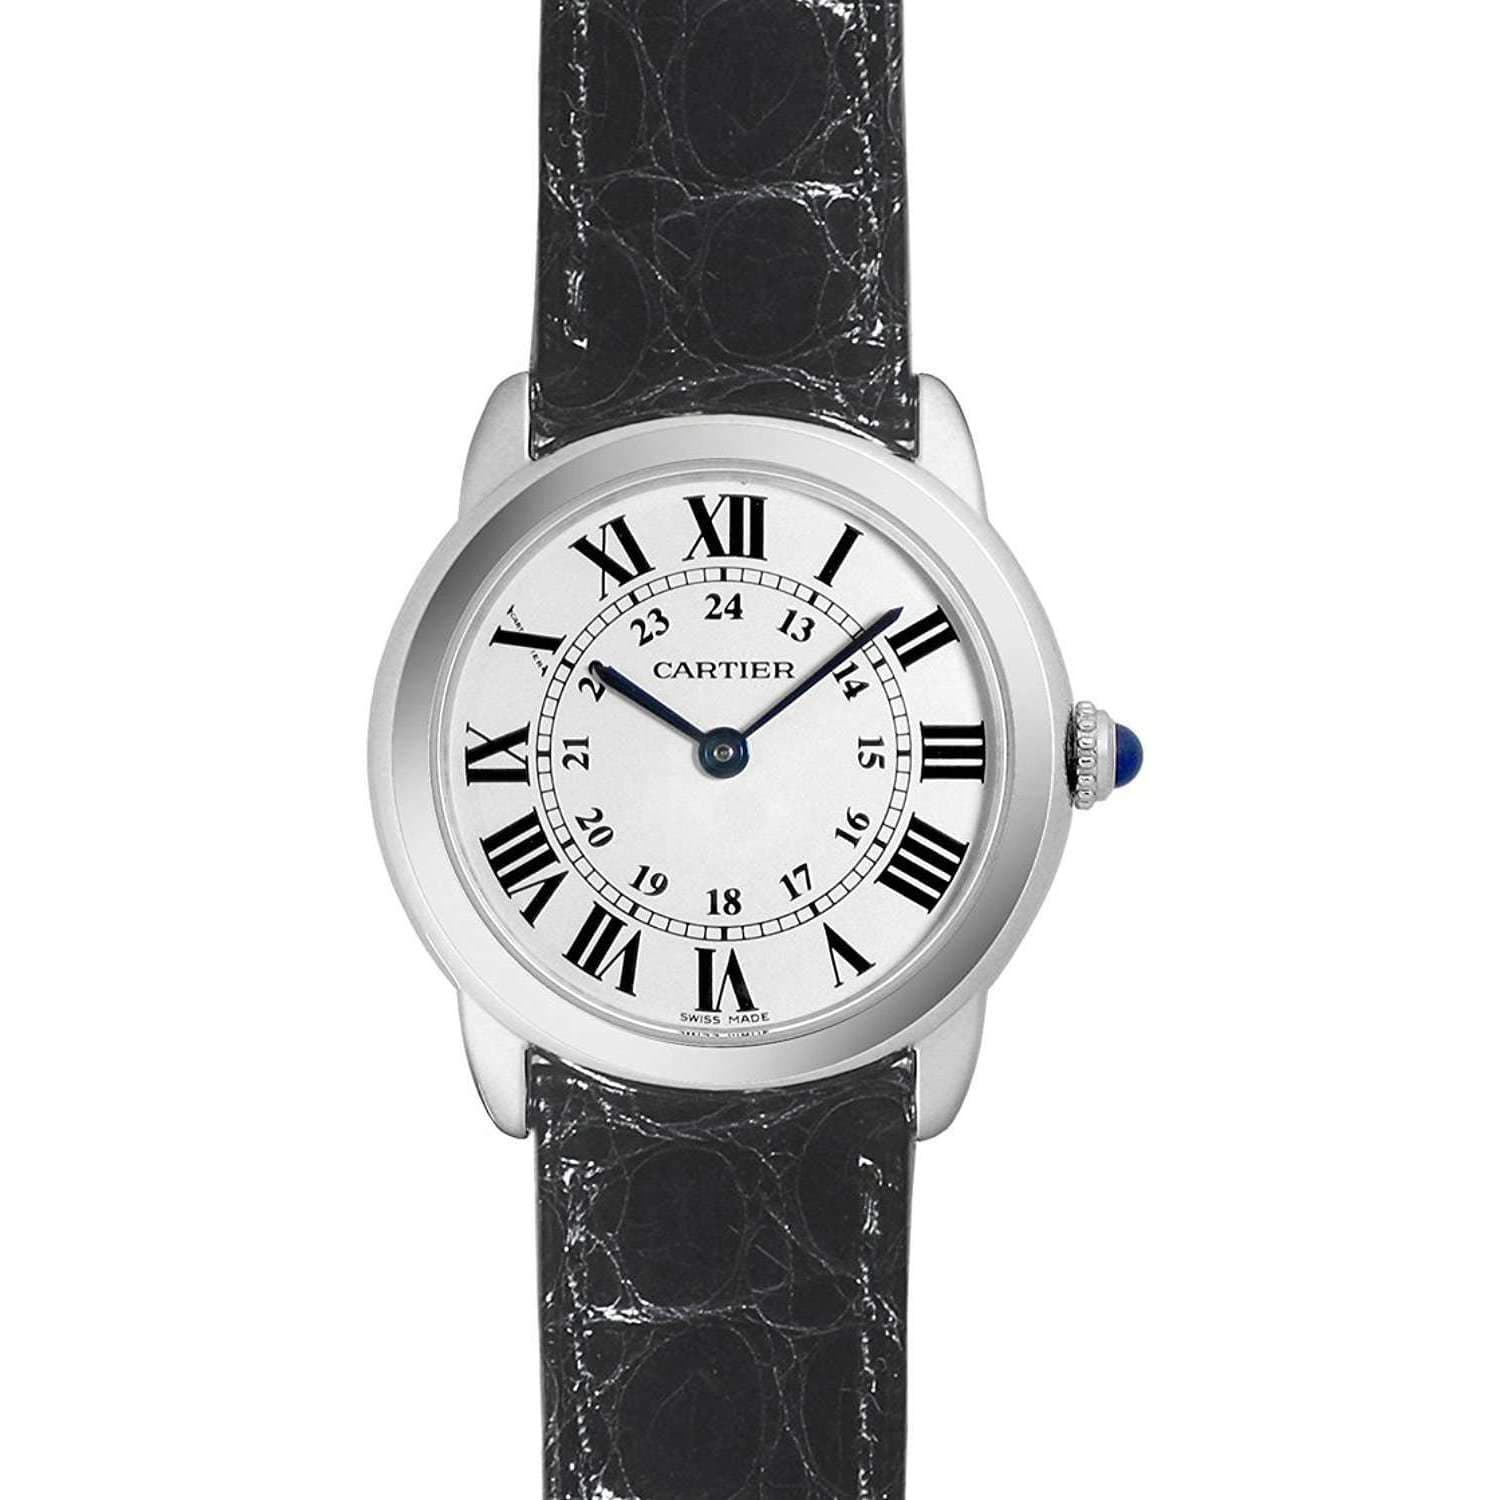 CARTIER RONDE SOLO DE CARTIER 29MM WOMEN WATCH W6700155 - ROOK JAPAN